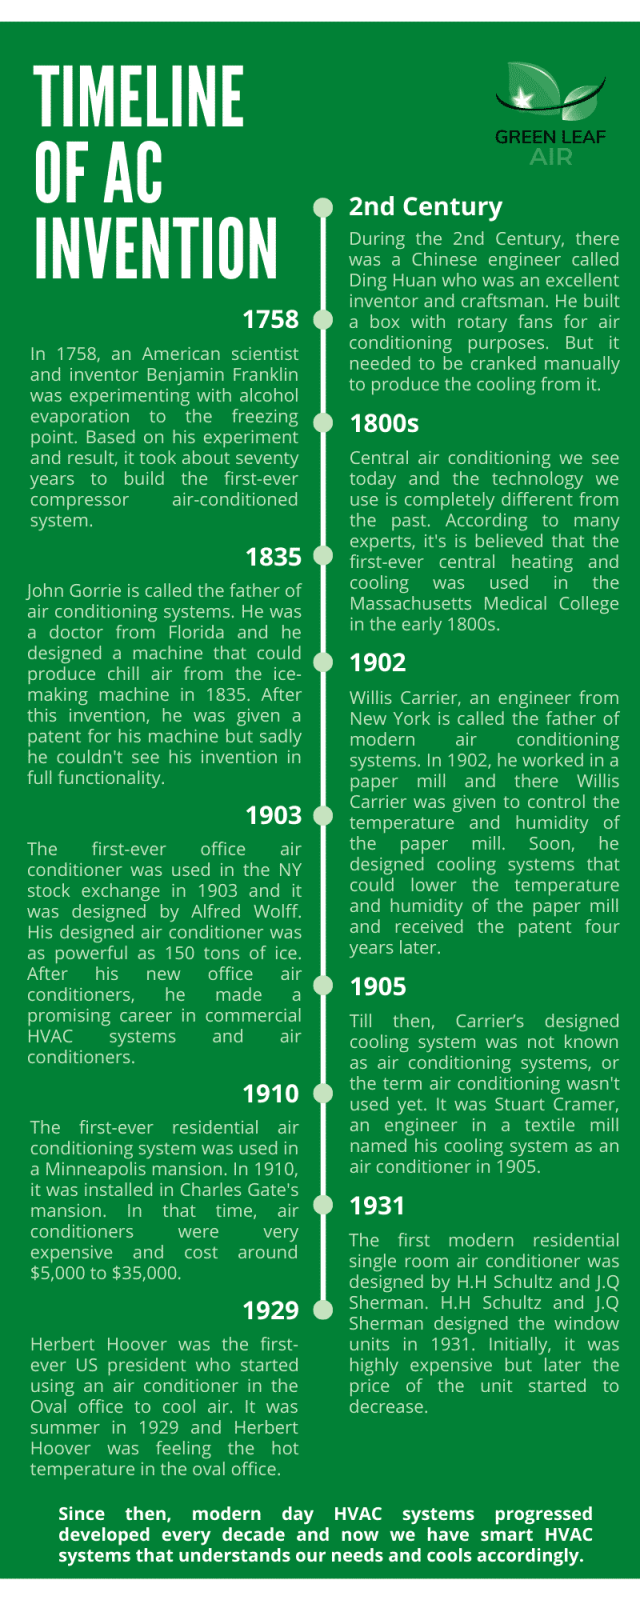 Timeline of AC Invention